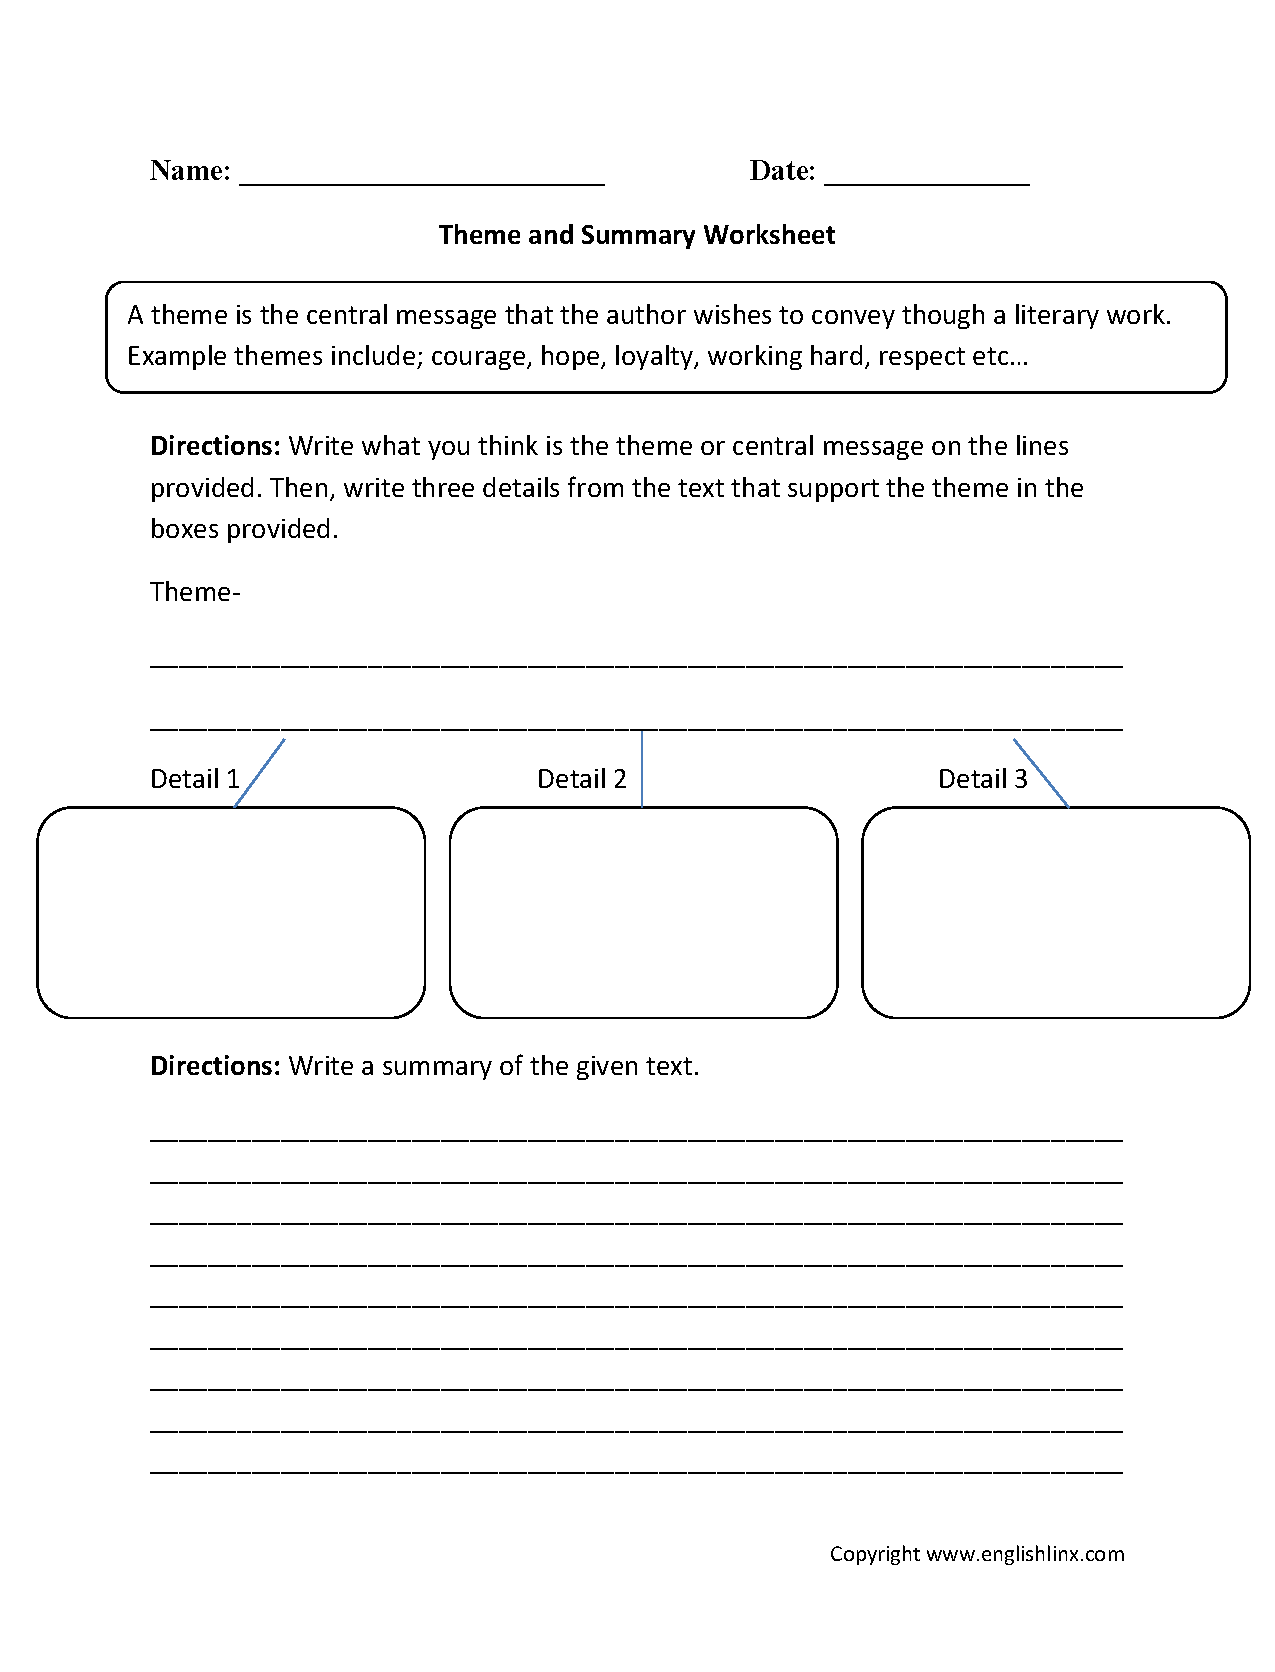 Theme Worksheets 4th Grade Reading Worksheets Summarizing Worksheet Reading Worksheets [ 1672 x 1275 Pixel ]